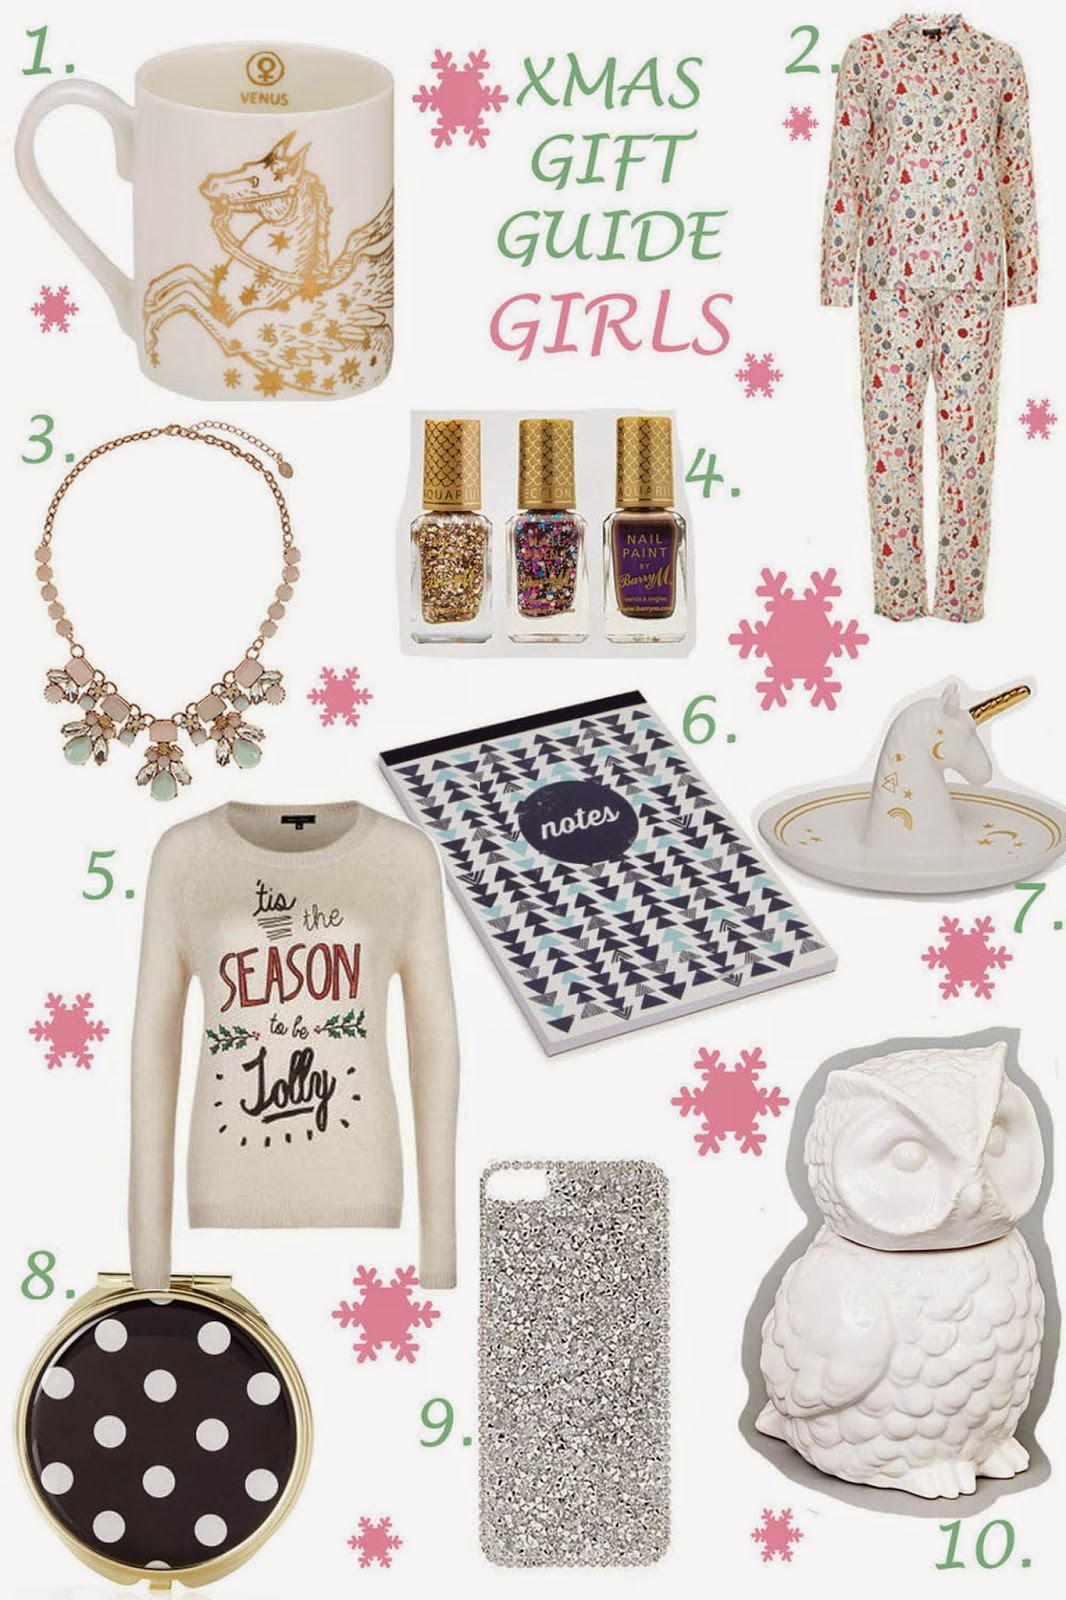 My Christmas Gift Guide for Girls